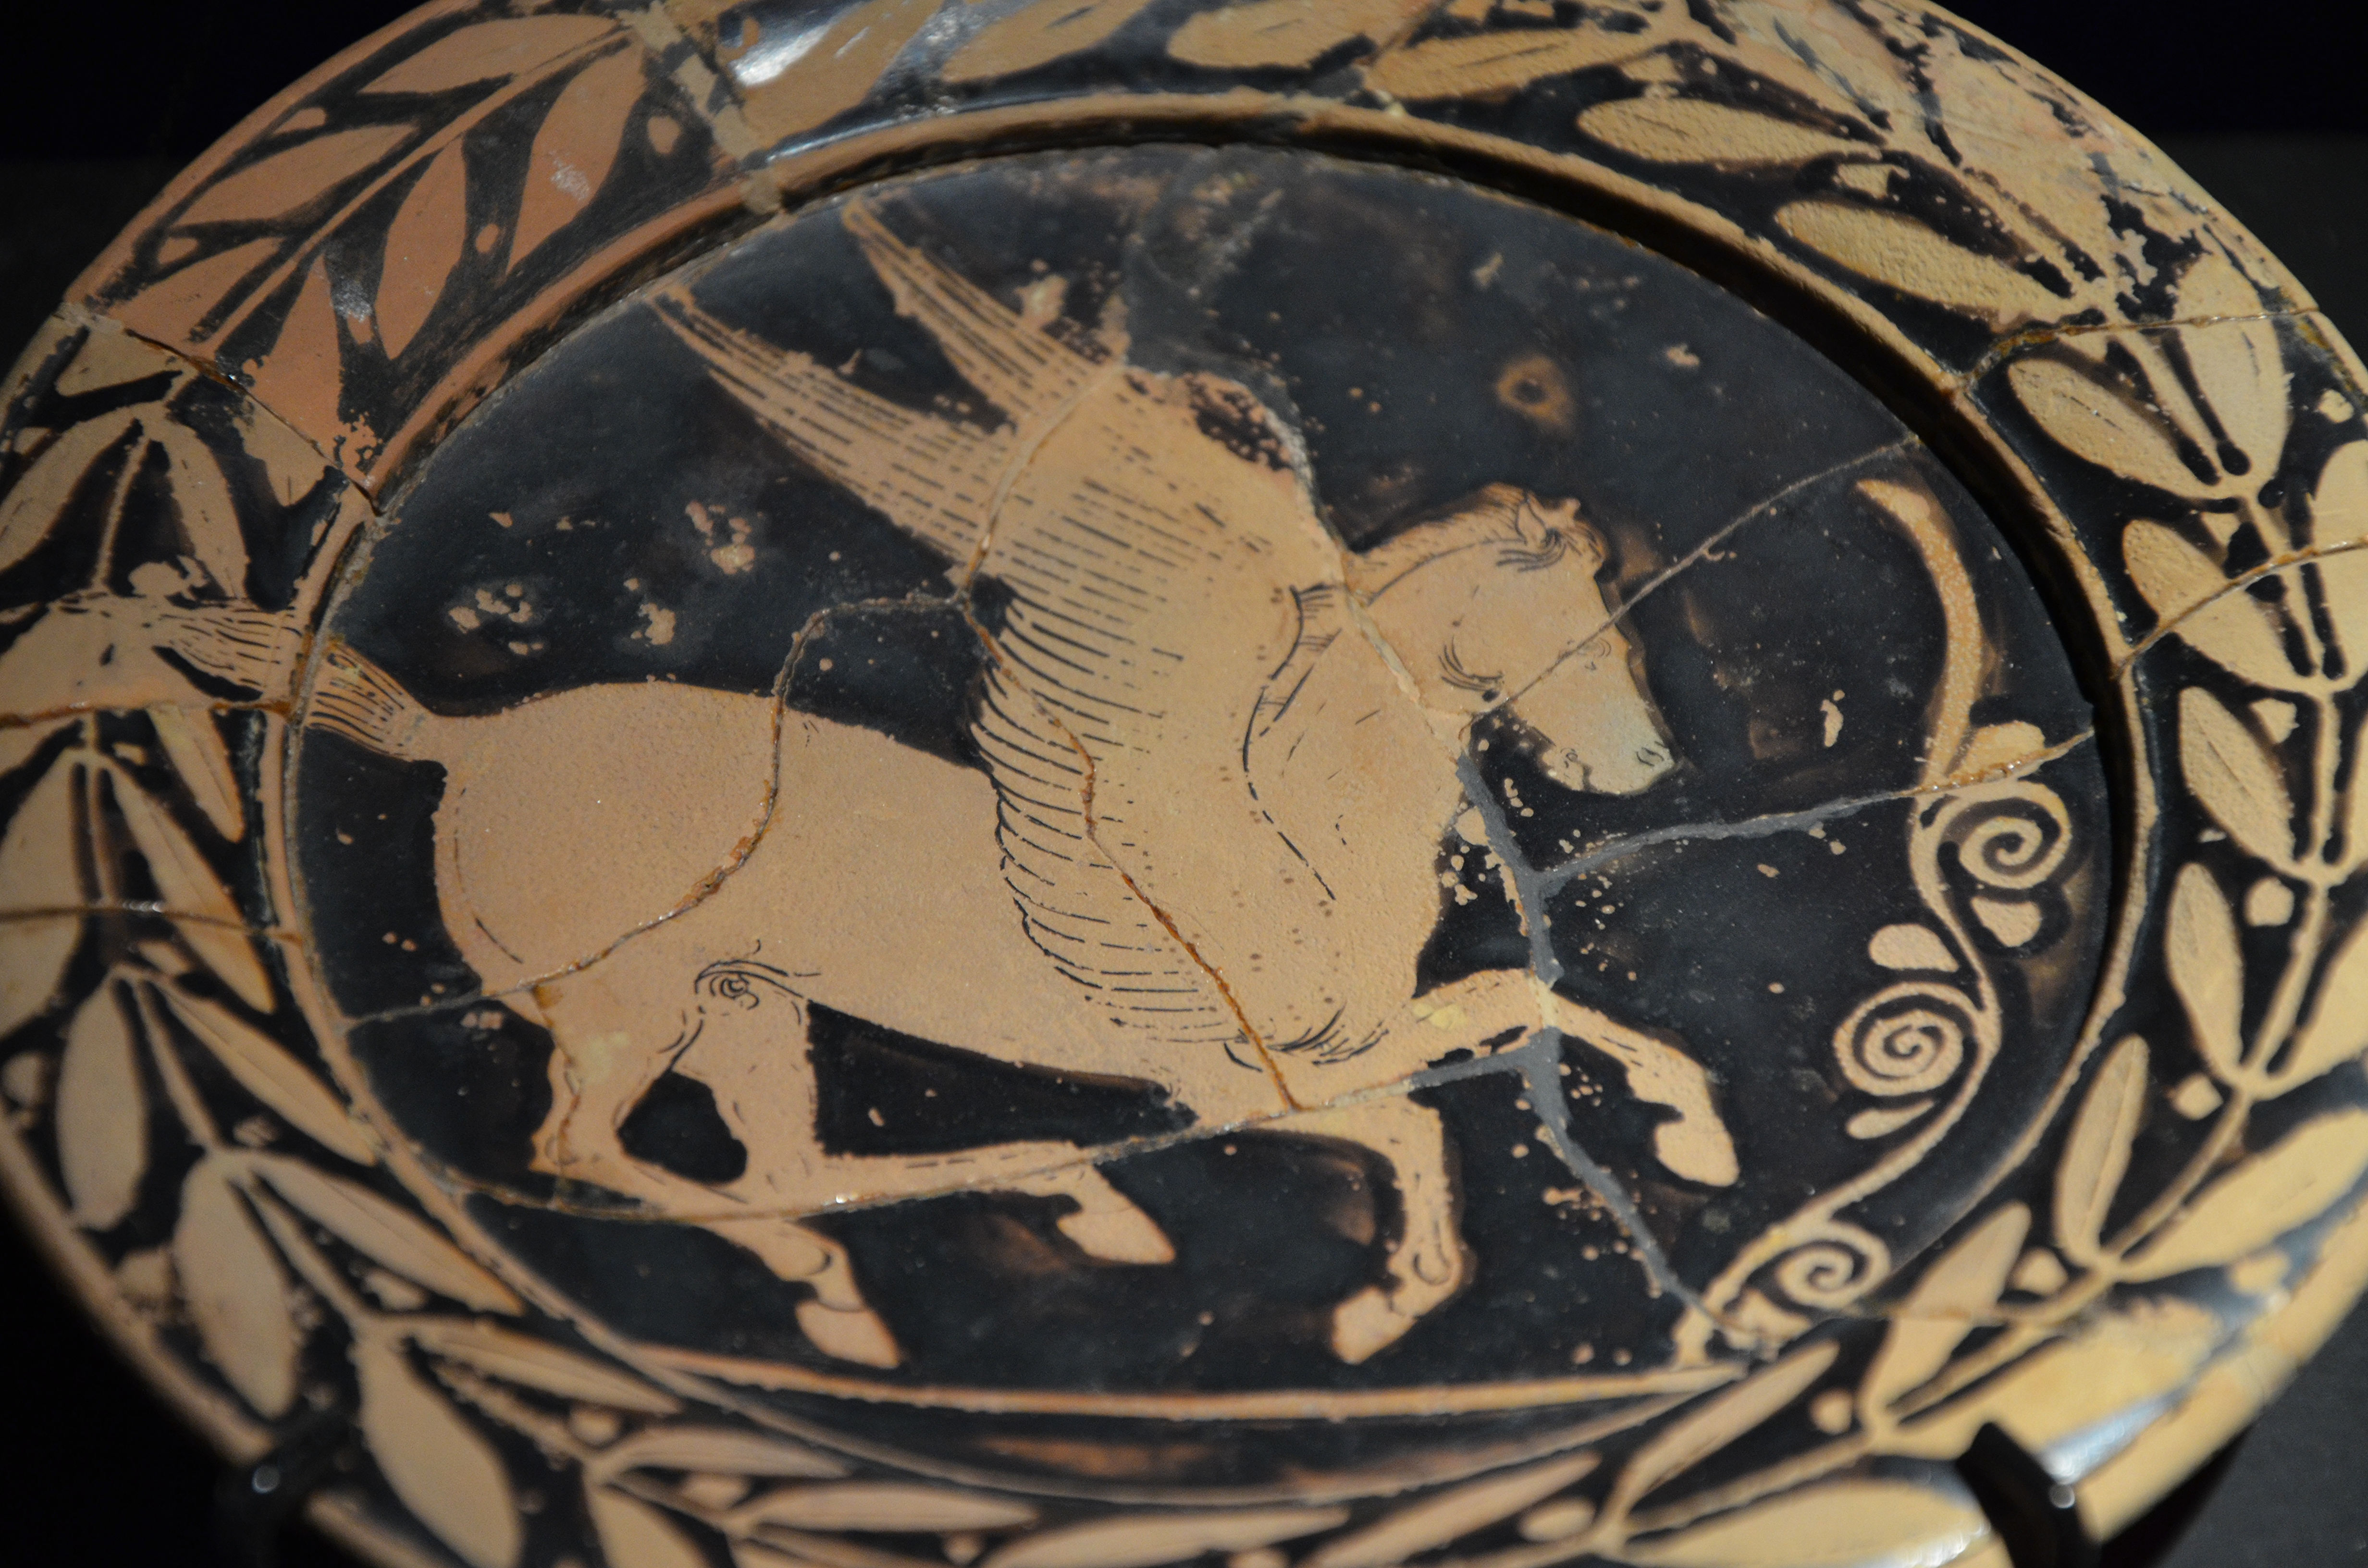 FileAttic plate with Pegasus from Greece 420 BC Monsters. Fantastic & File:Attic plate with Pegasus from Greece 420 BC Monsters ...